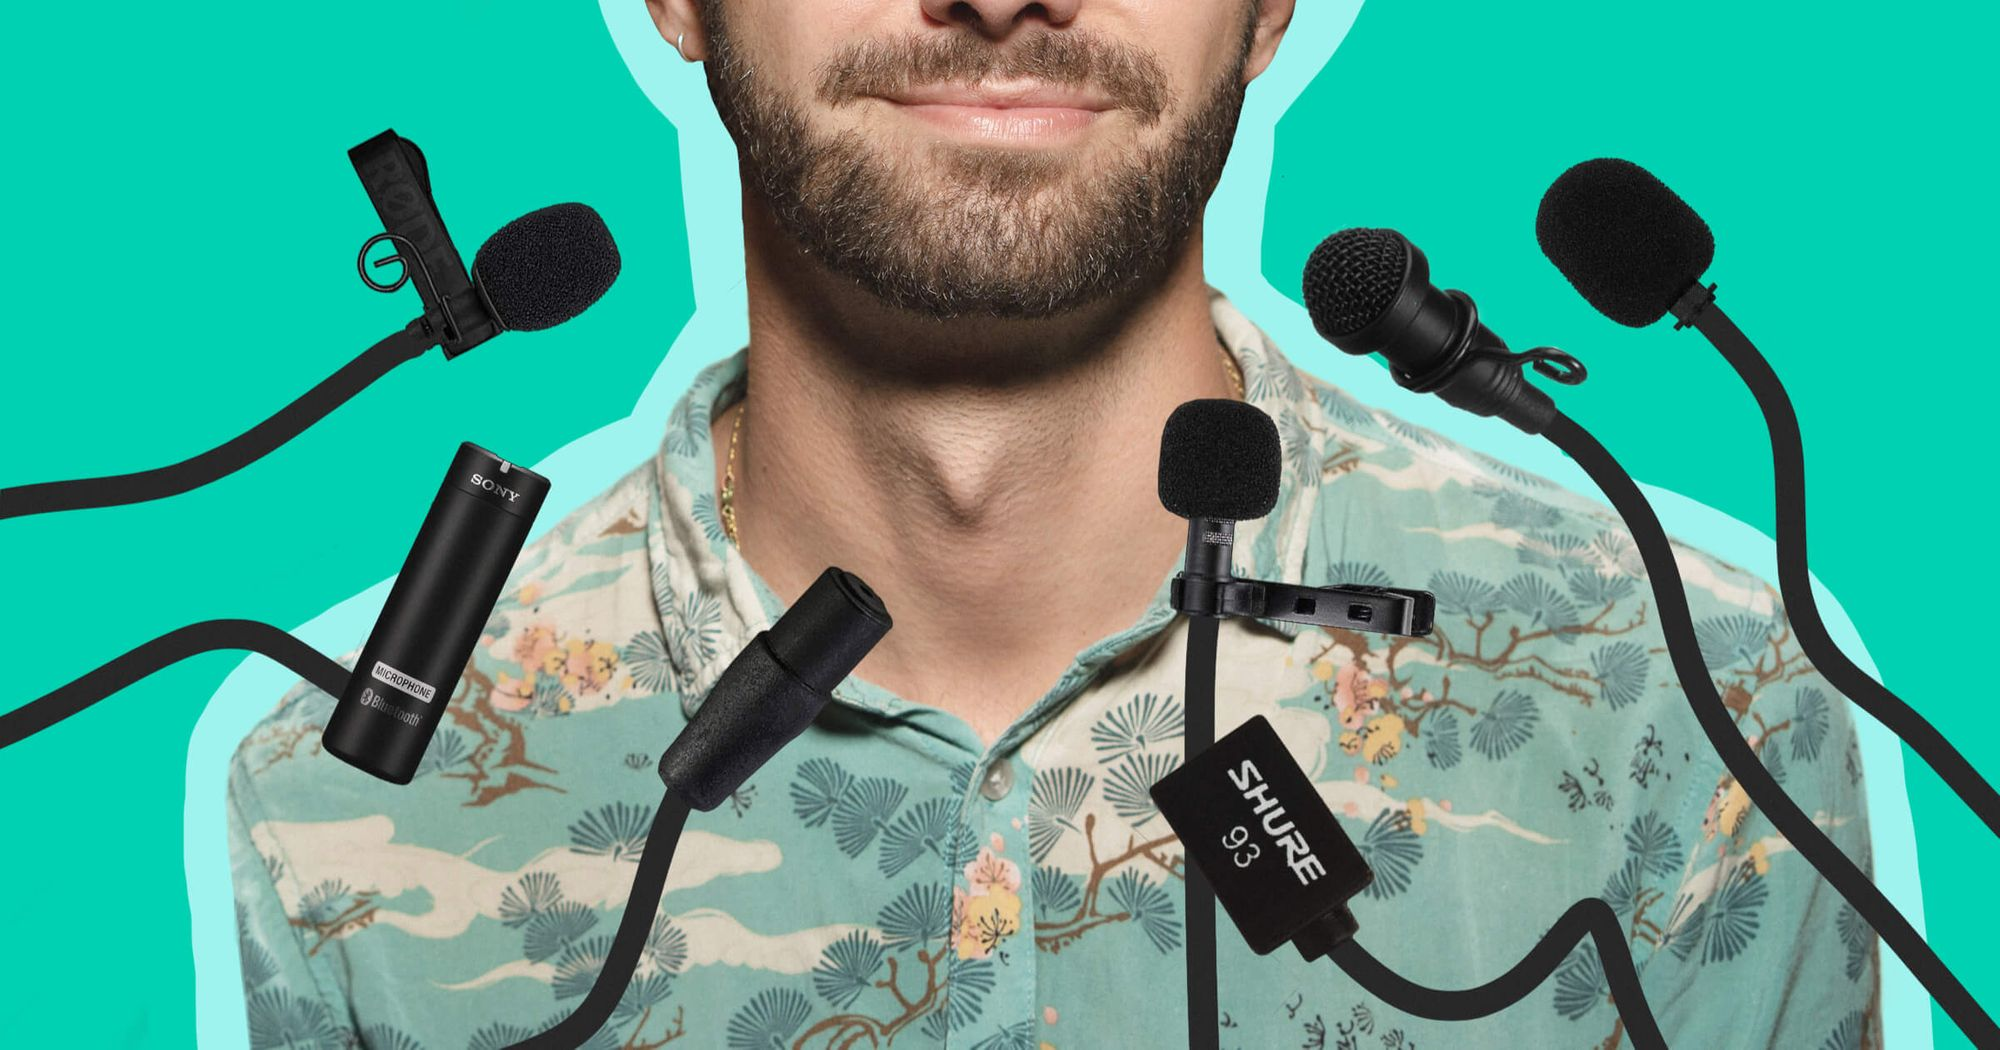 The best lavalier microphones